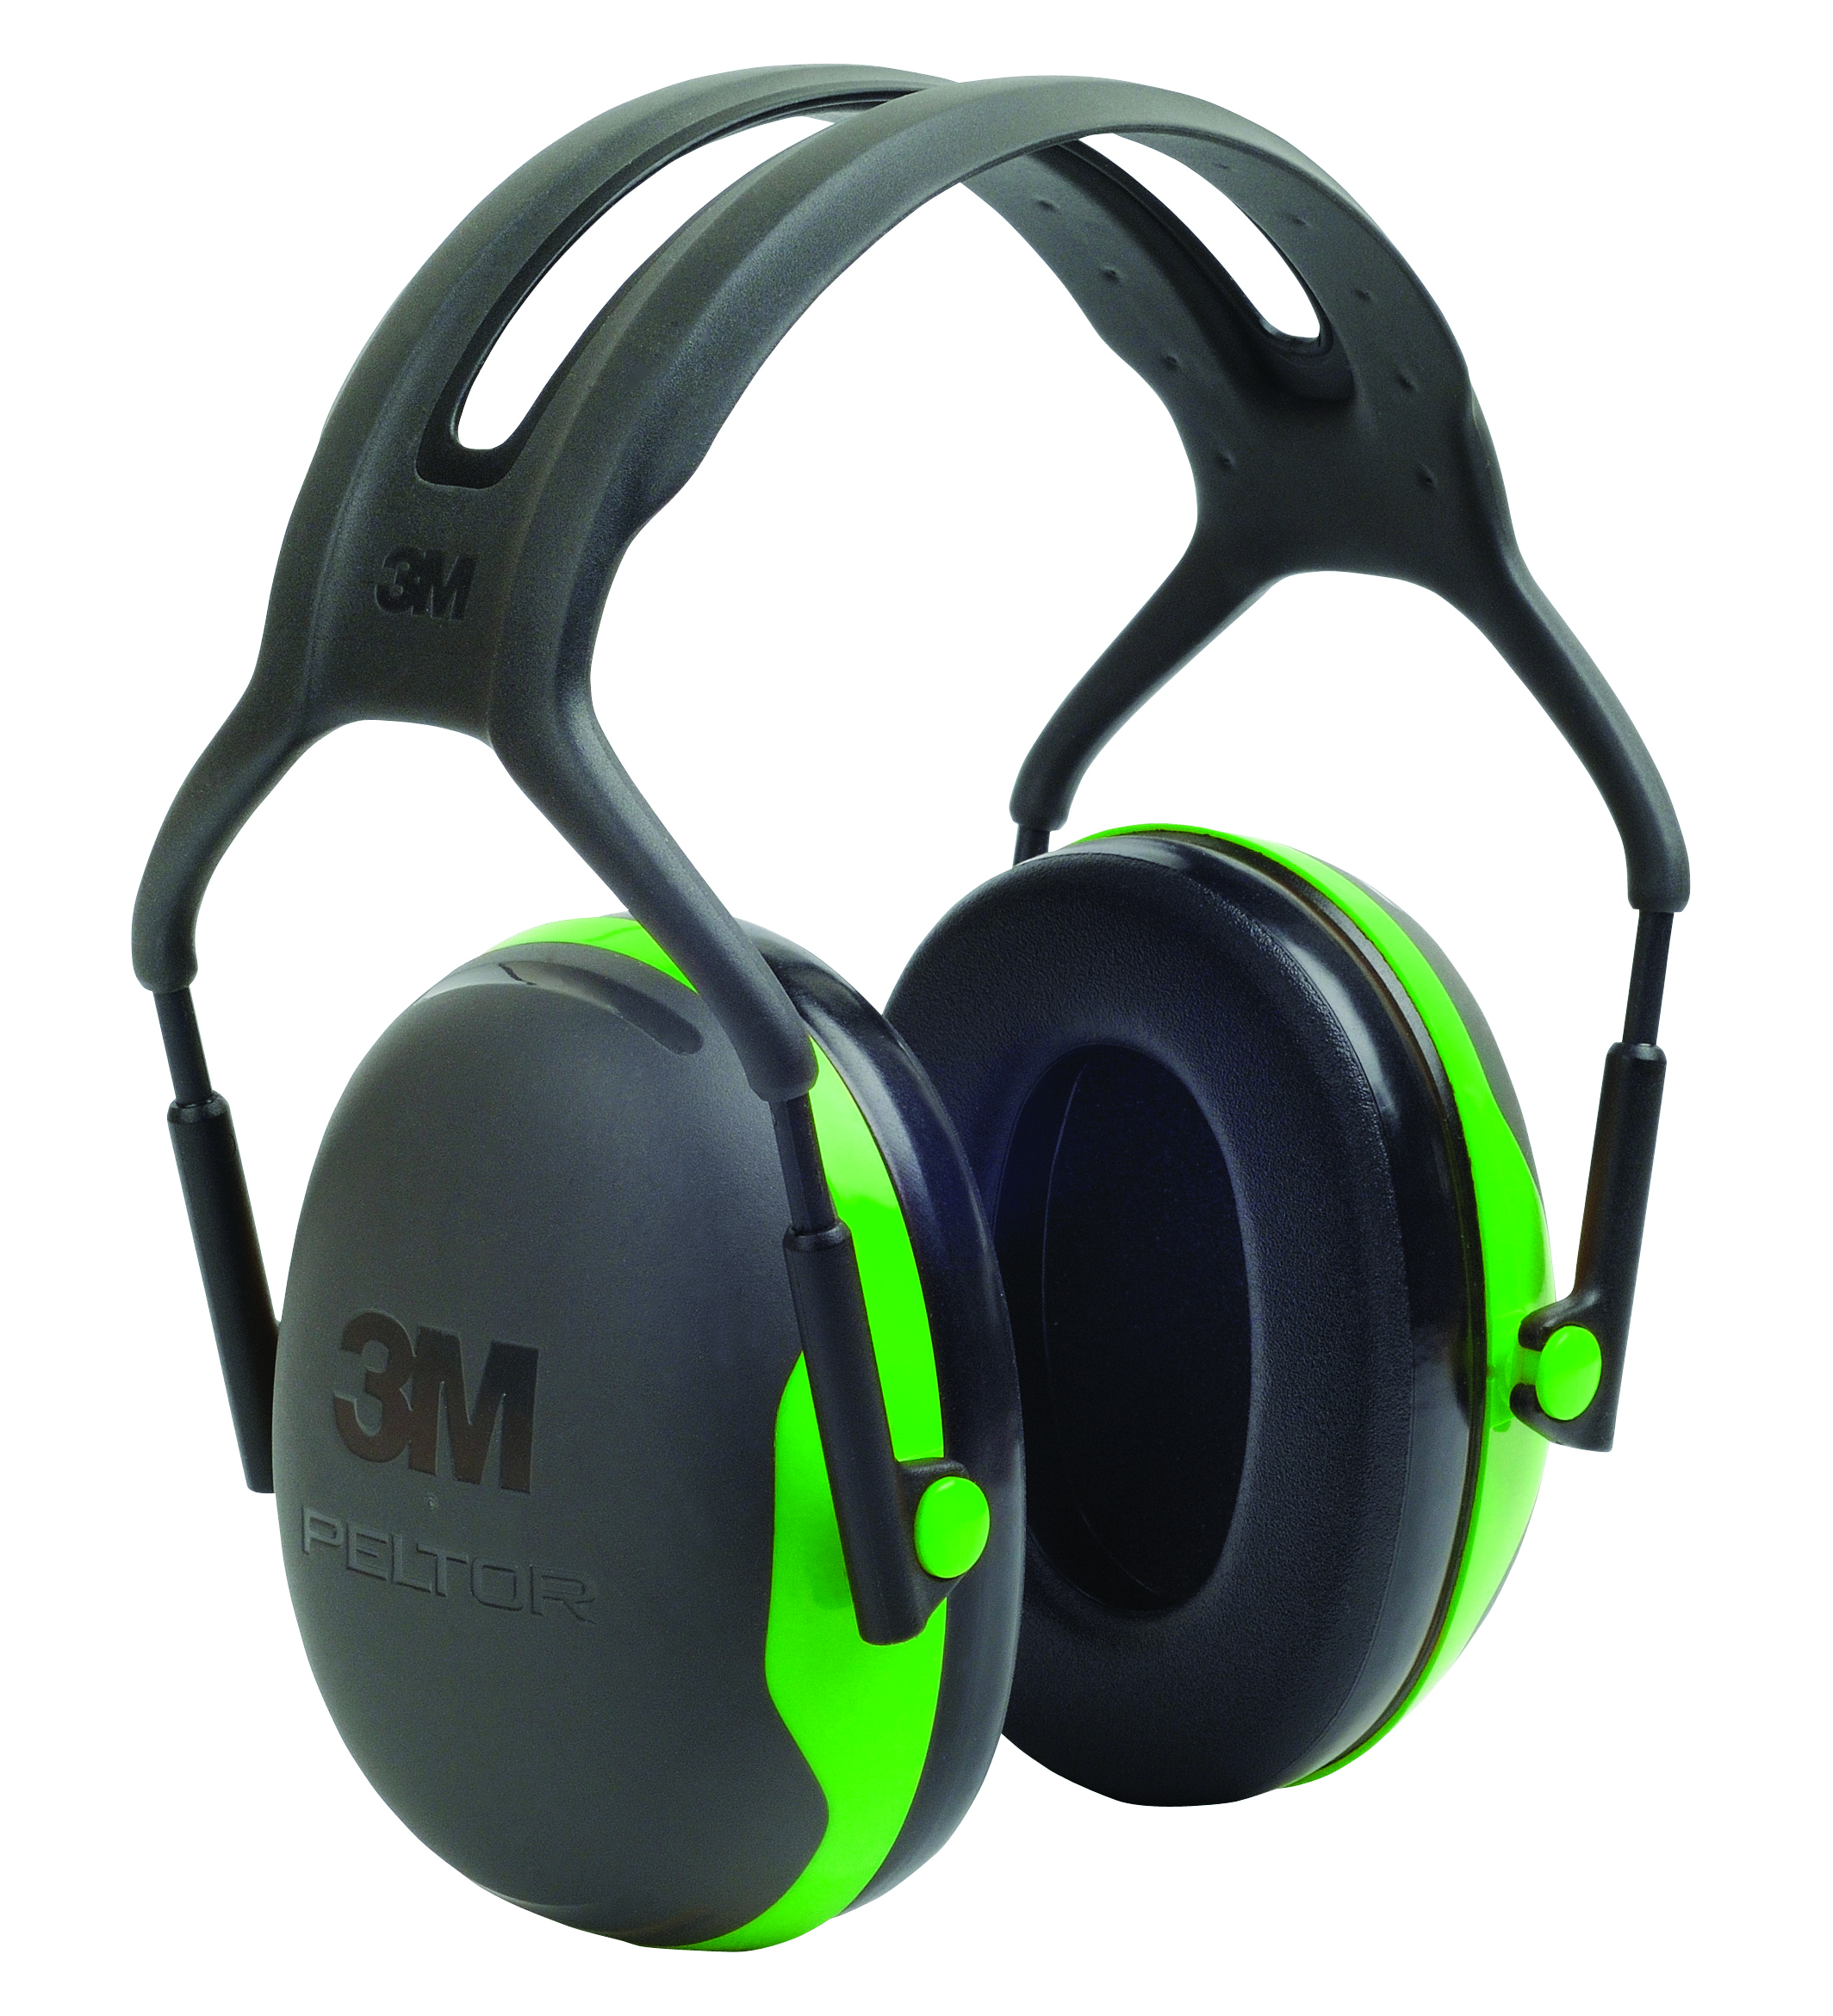 X5A - 3M™ Peltor™ X Series Earmuffs-(NRR)* 31 dB, Over-the-HEAd-----UOM: 1/EA